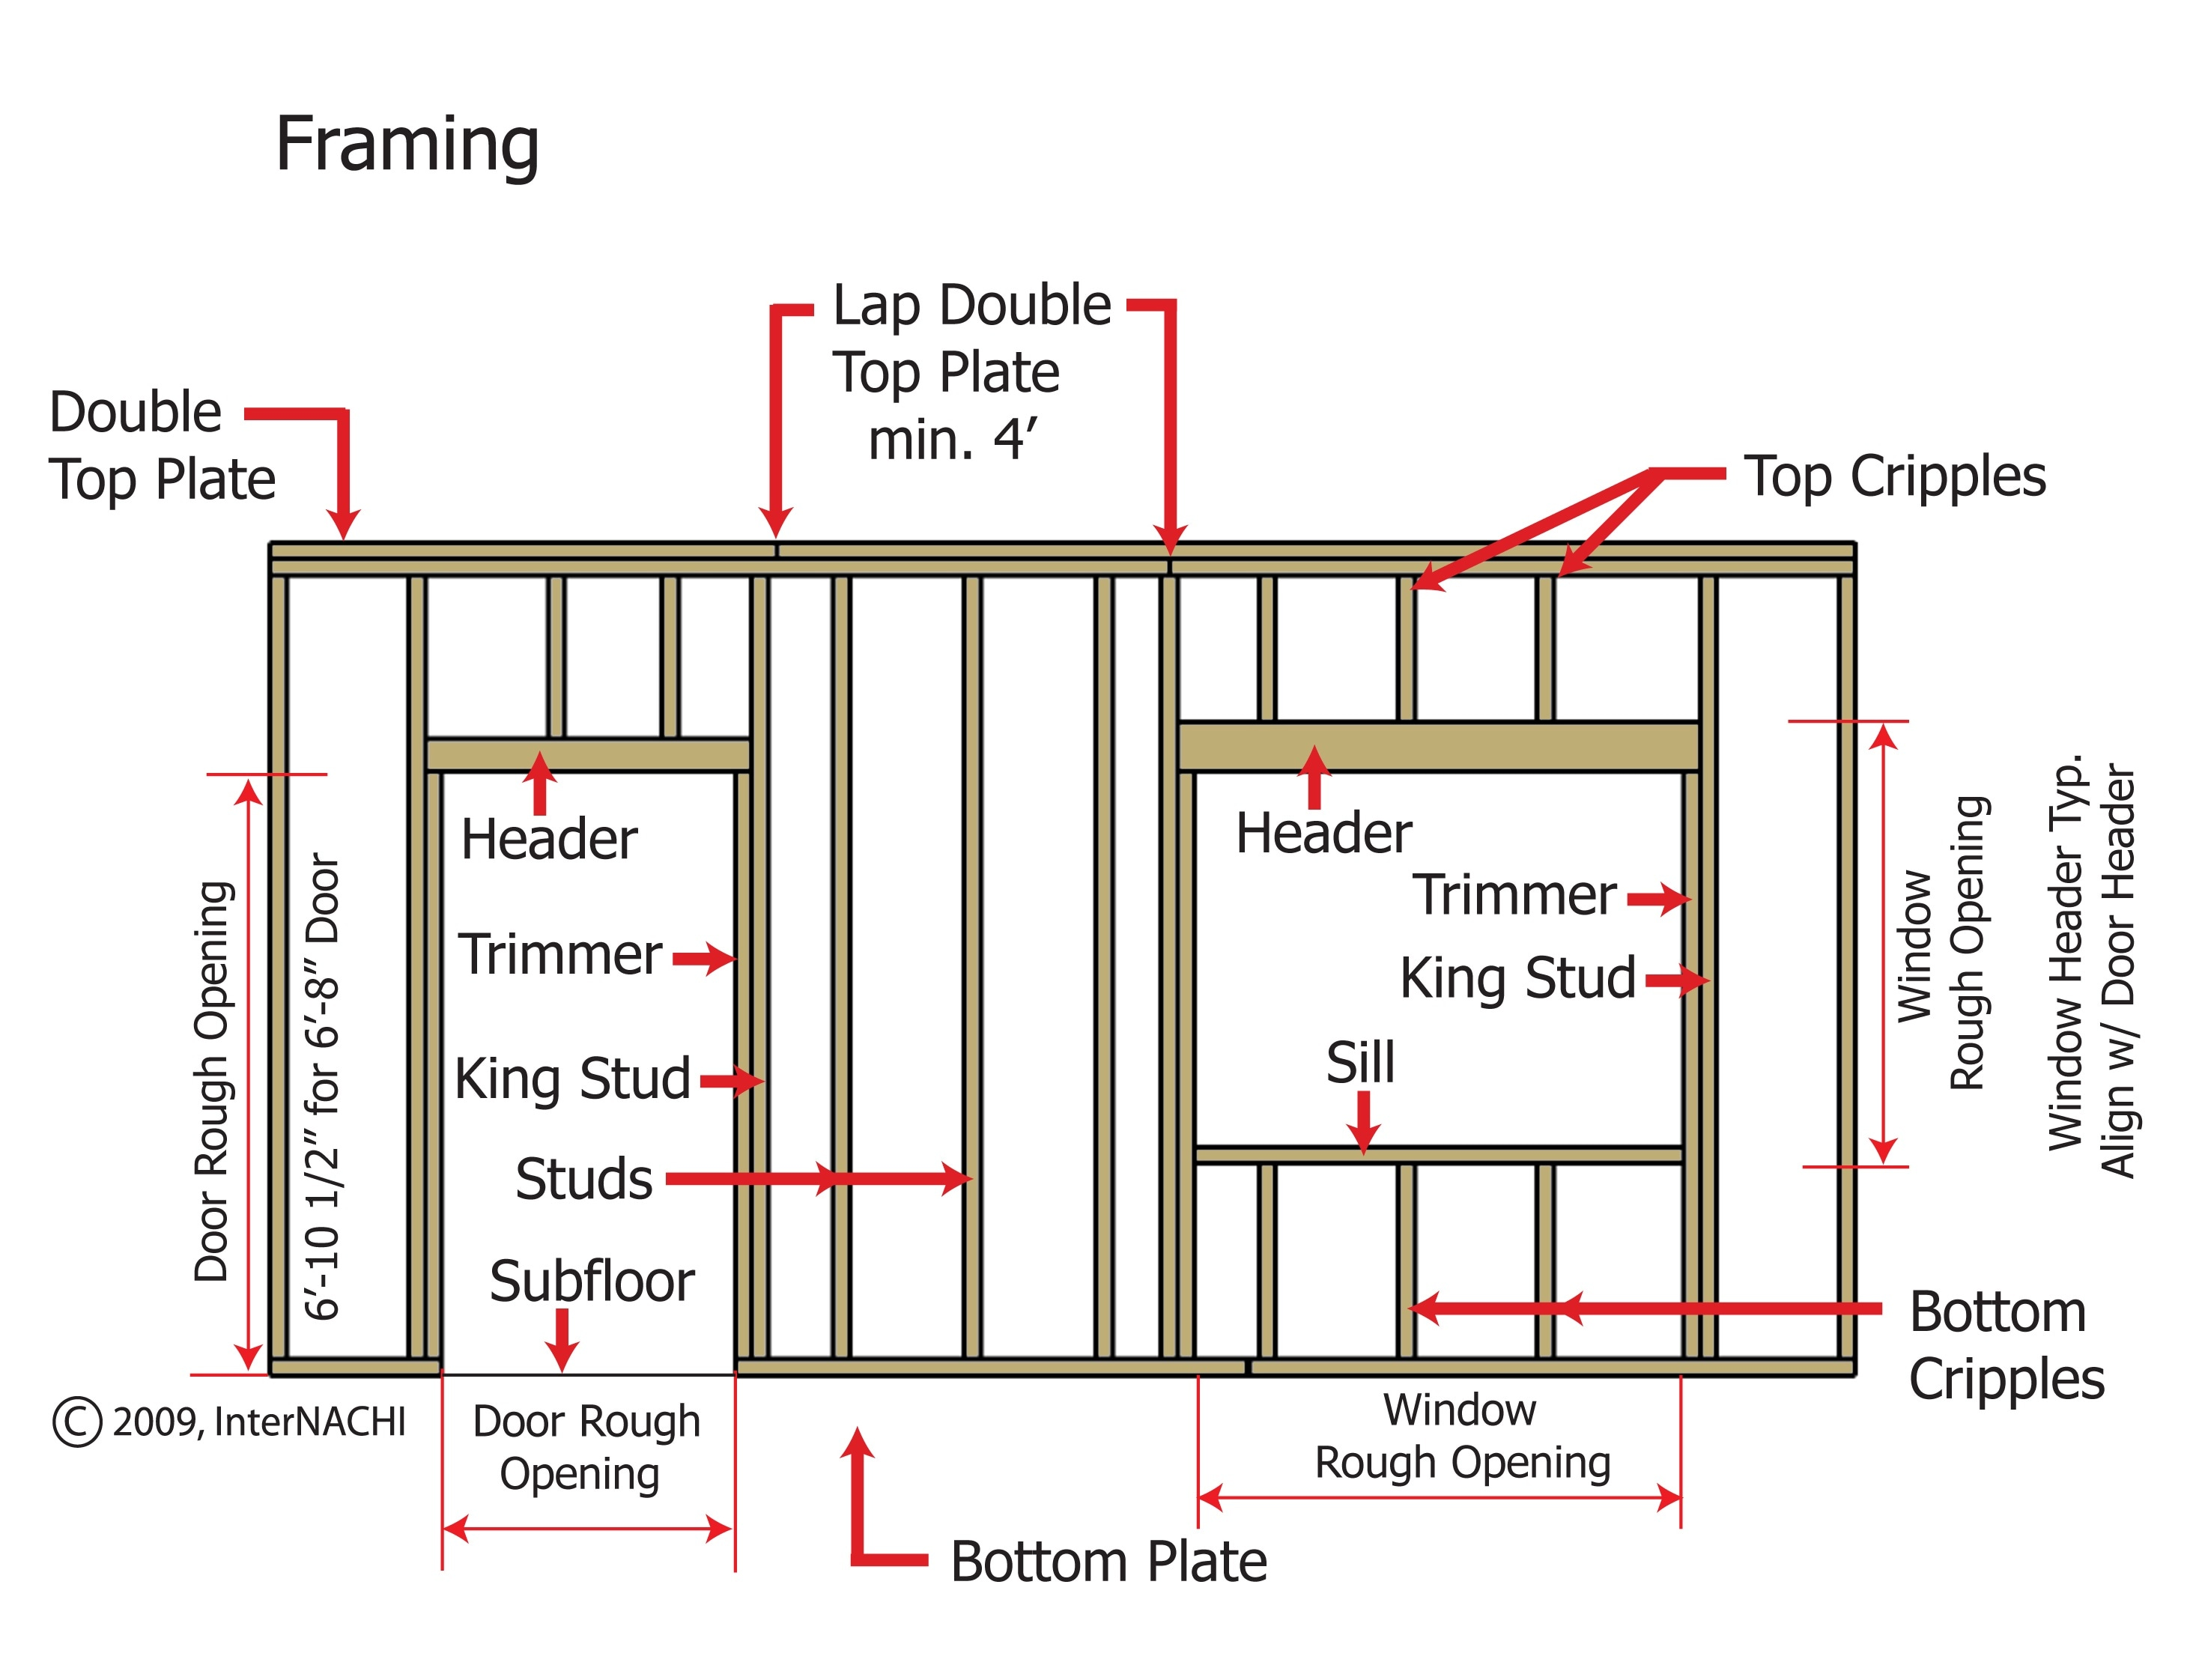 Exterior walls of wood-frame construction must be designed and constructed according to building code. Components include bottom and top plates, studs, king studs, jack studs, trimmer studs, cripple studs, sills, headers, and door and window openings.